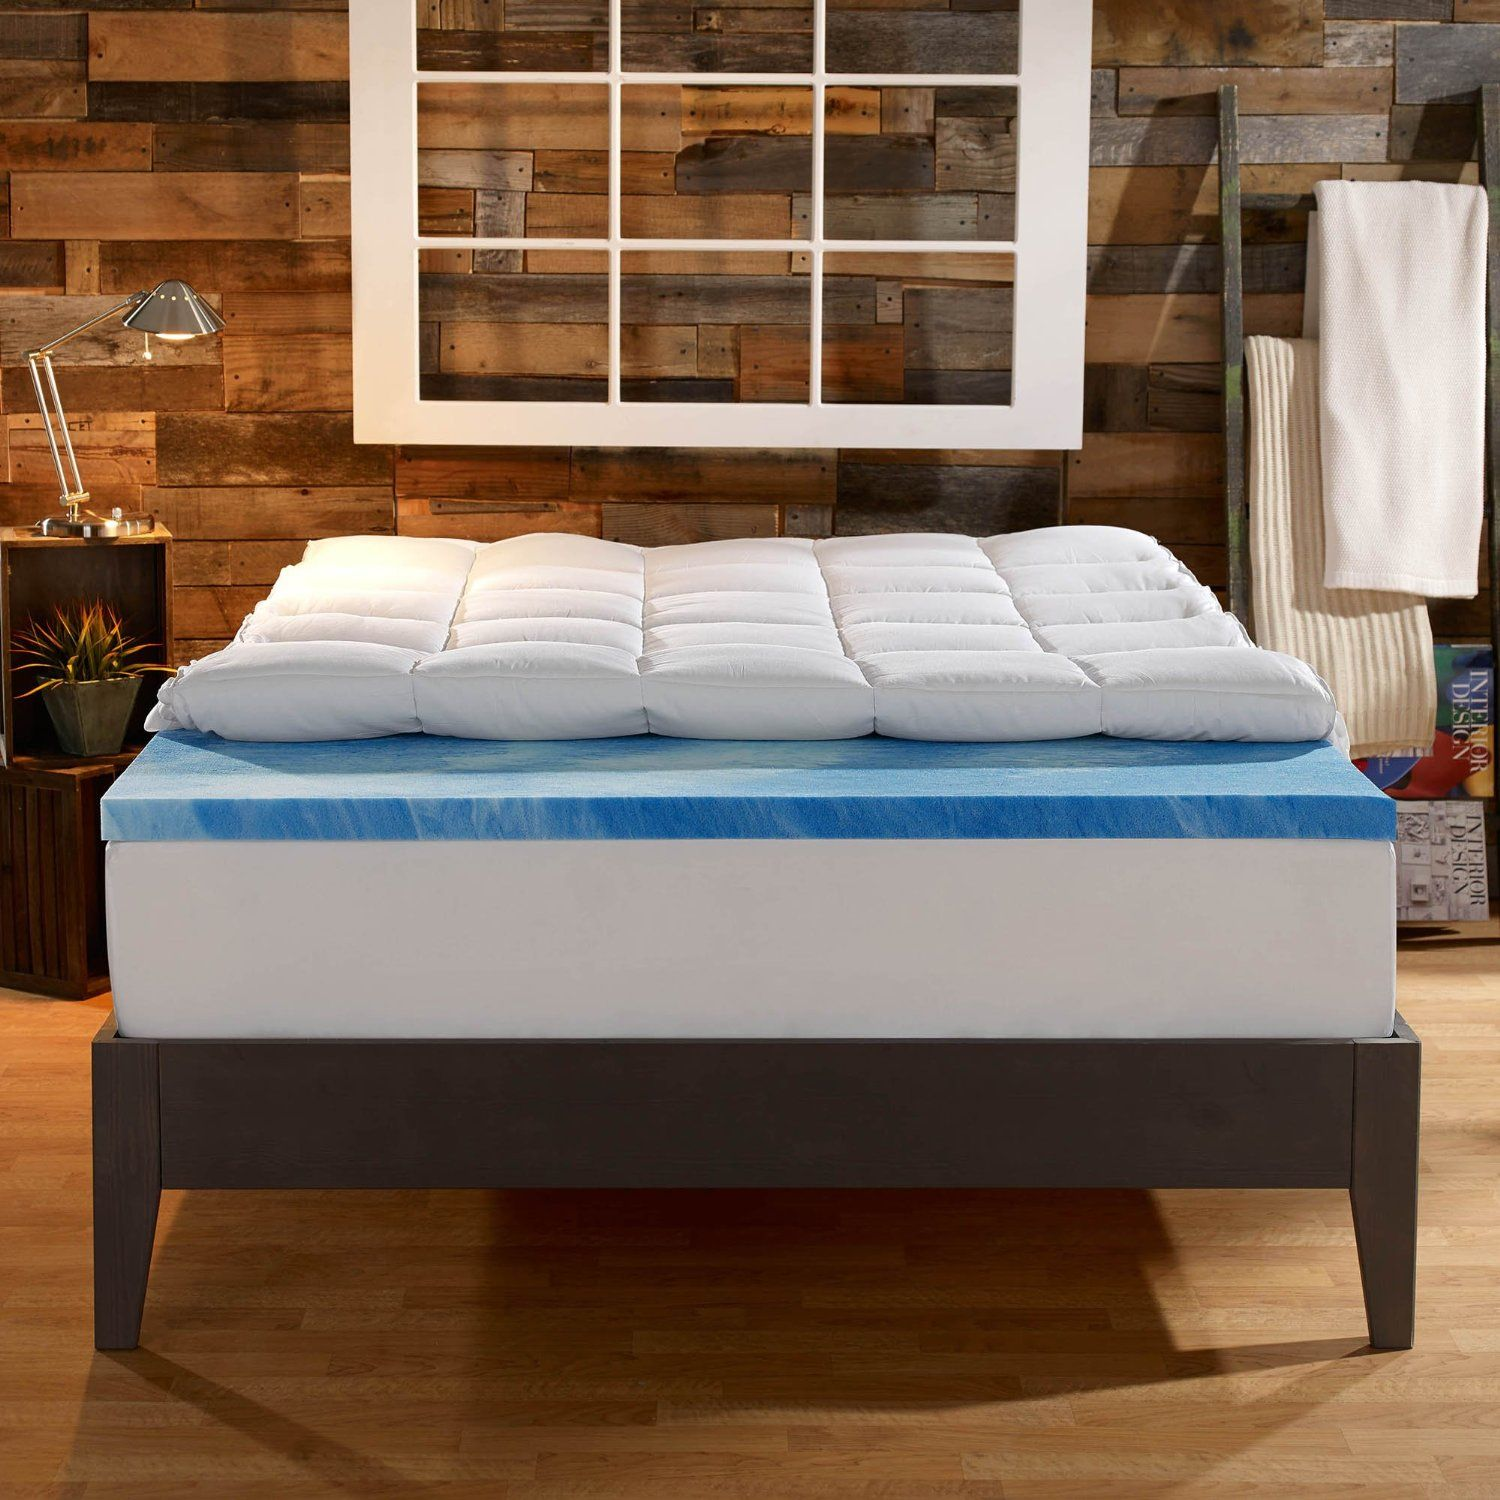 This is the mattress topper that would have solved all the